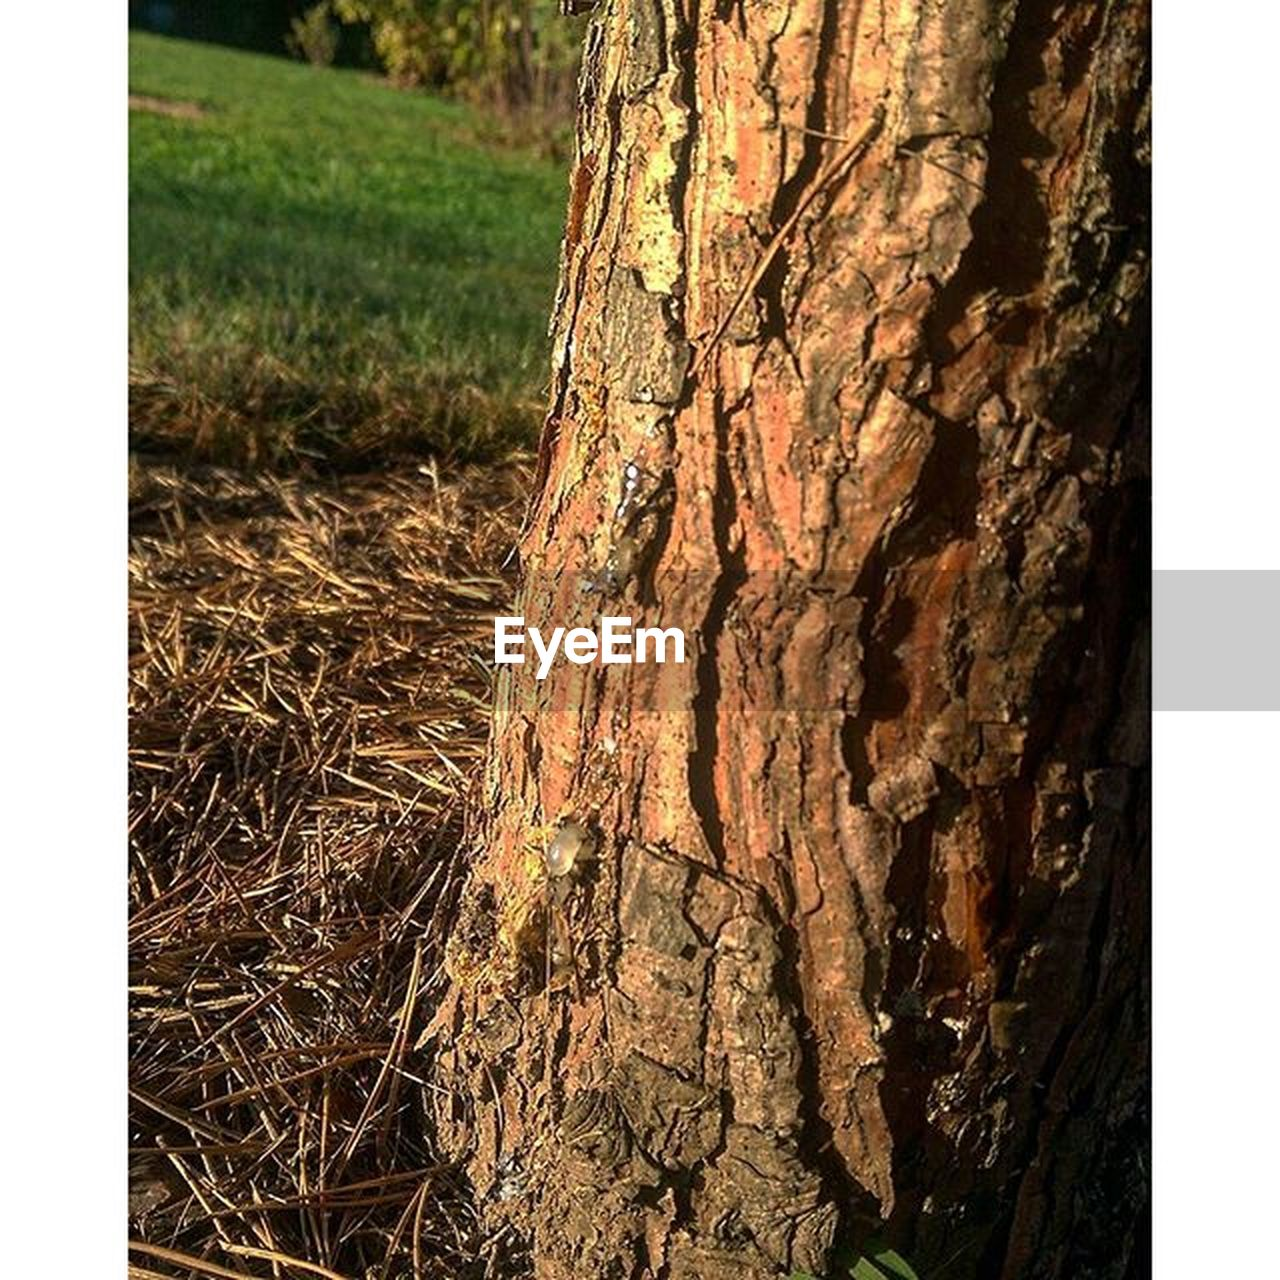 tree trunk, nature, day, tree, textured, no people, close-up, outdoors, grass